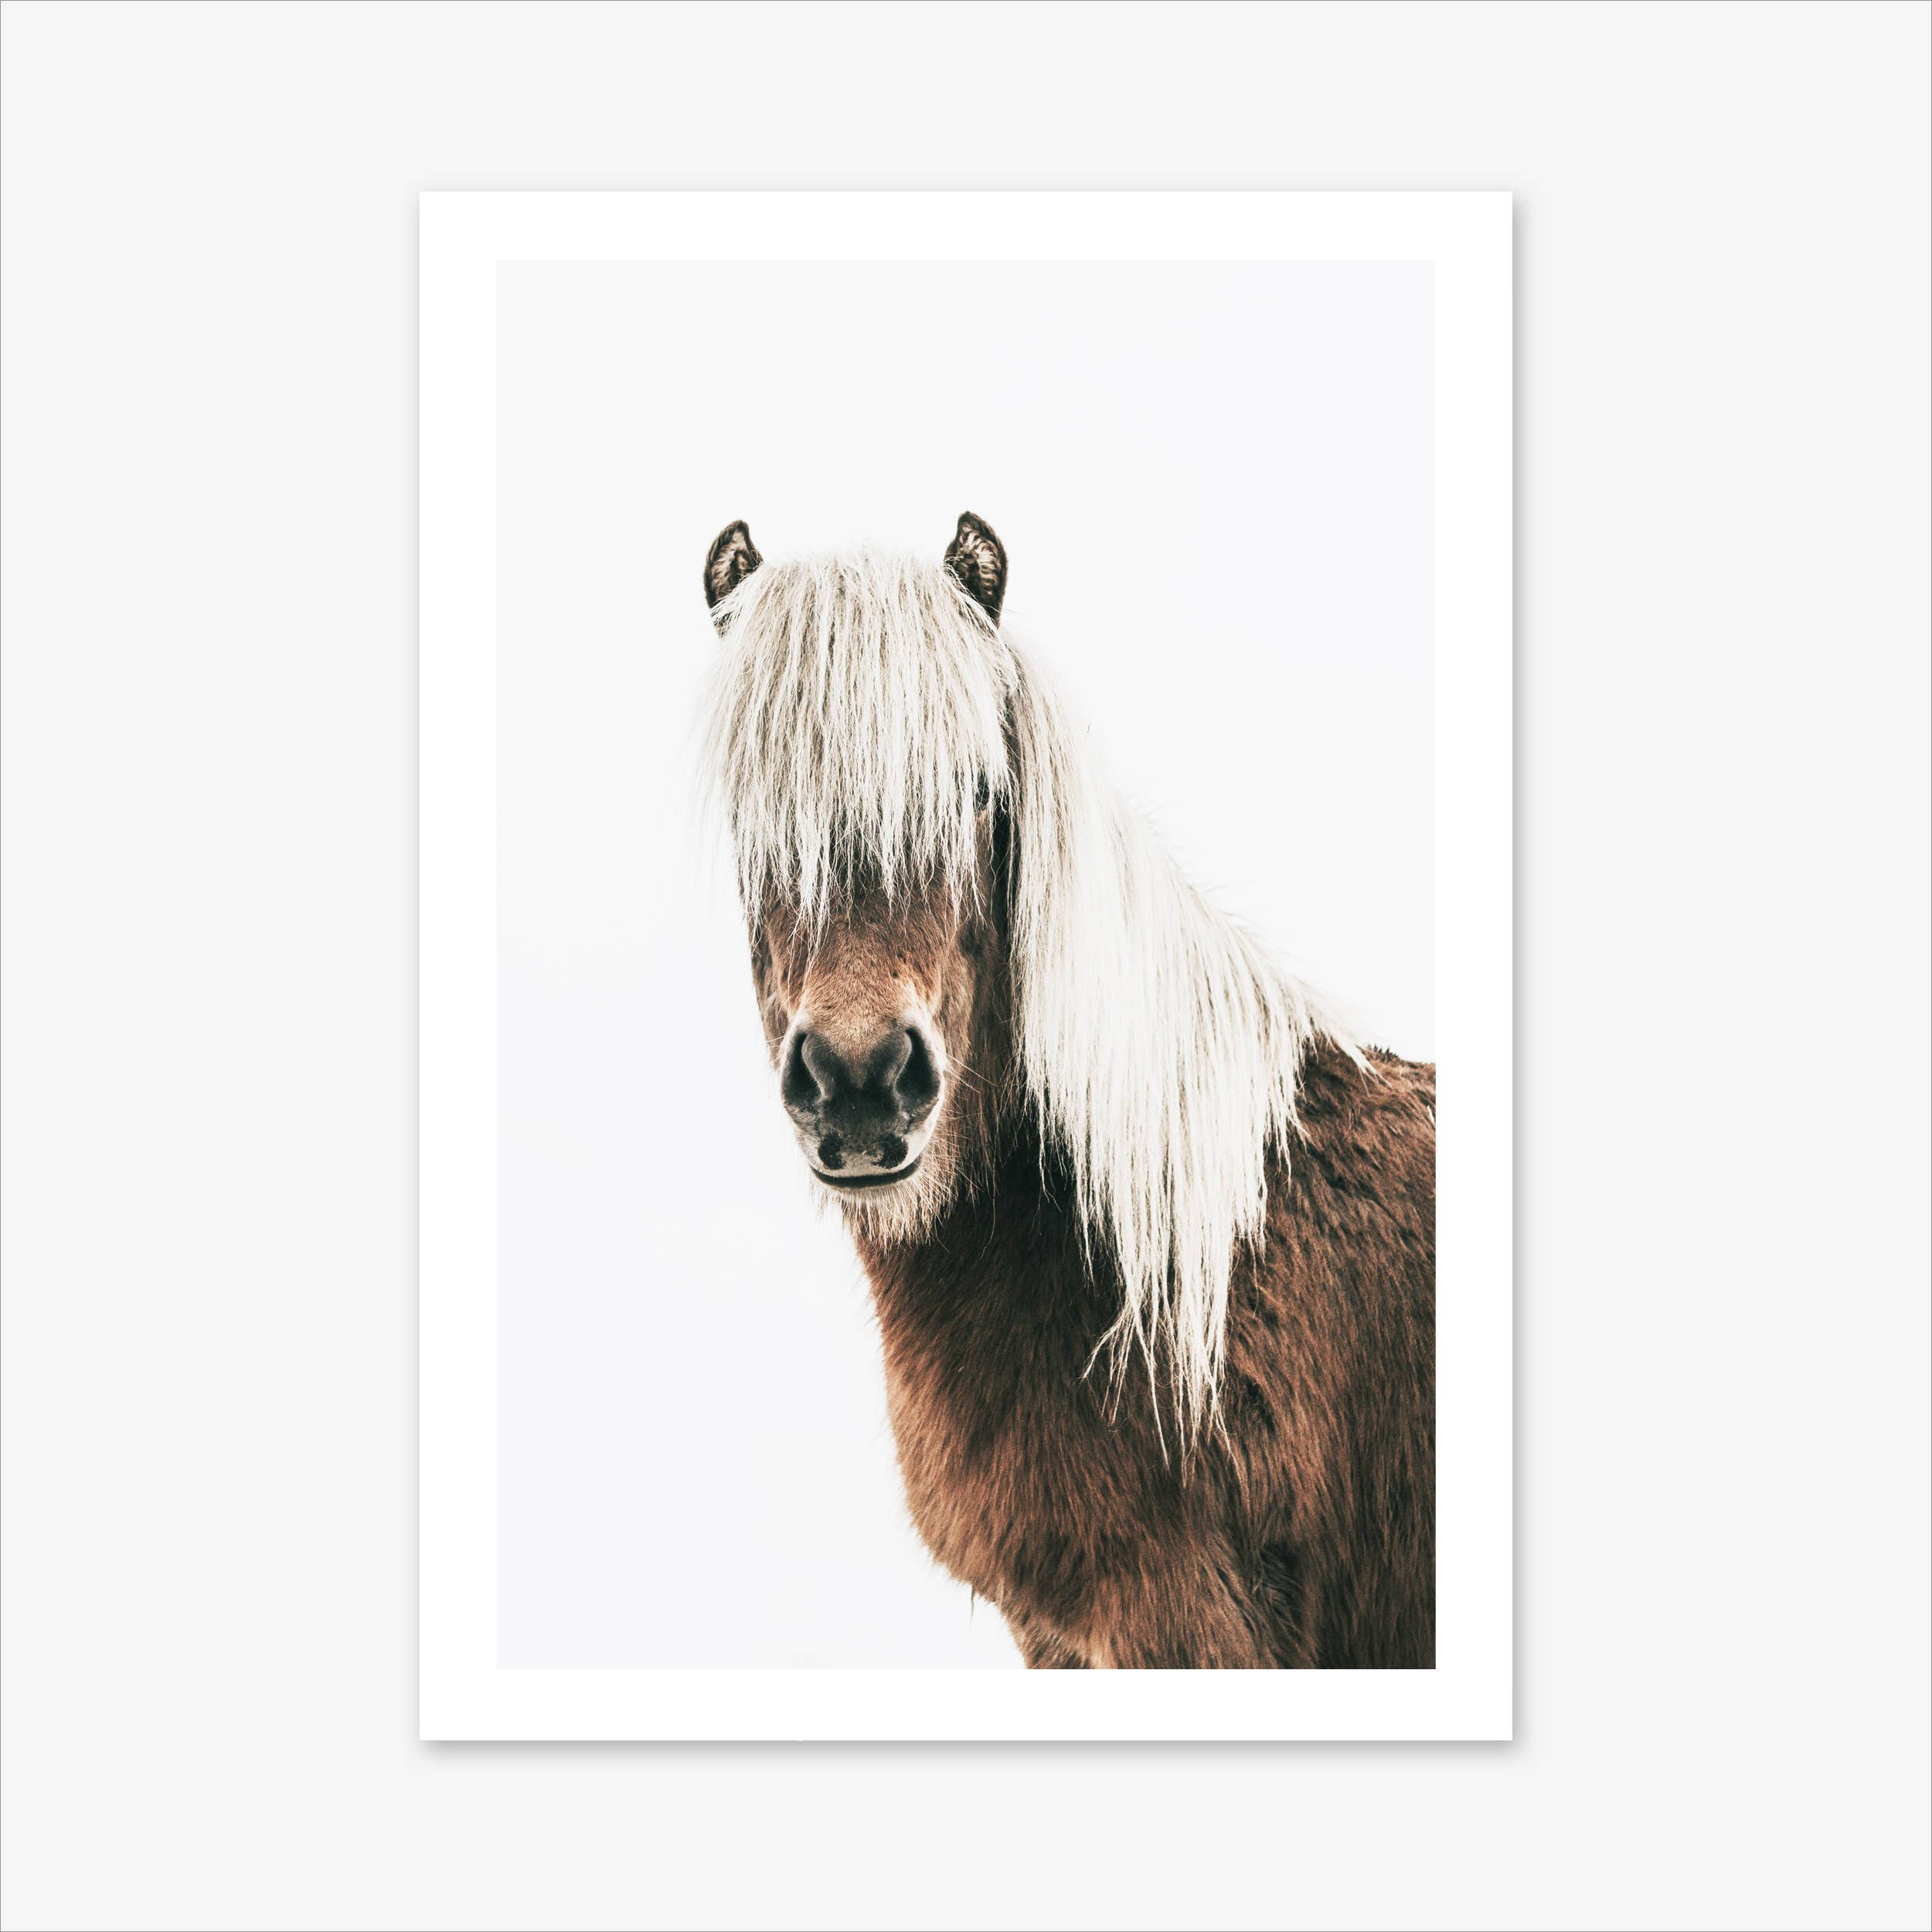 Scandinavian Homeoffice Design: Horse Print, Scandinavian Print, Nature Photography